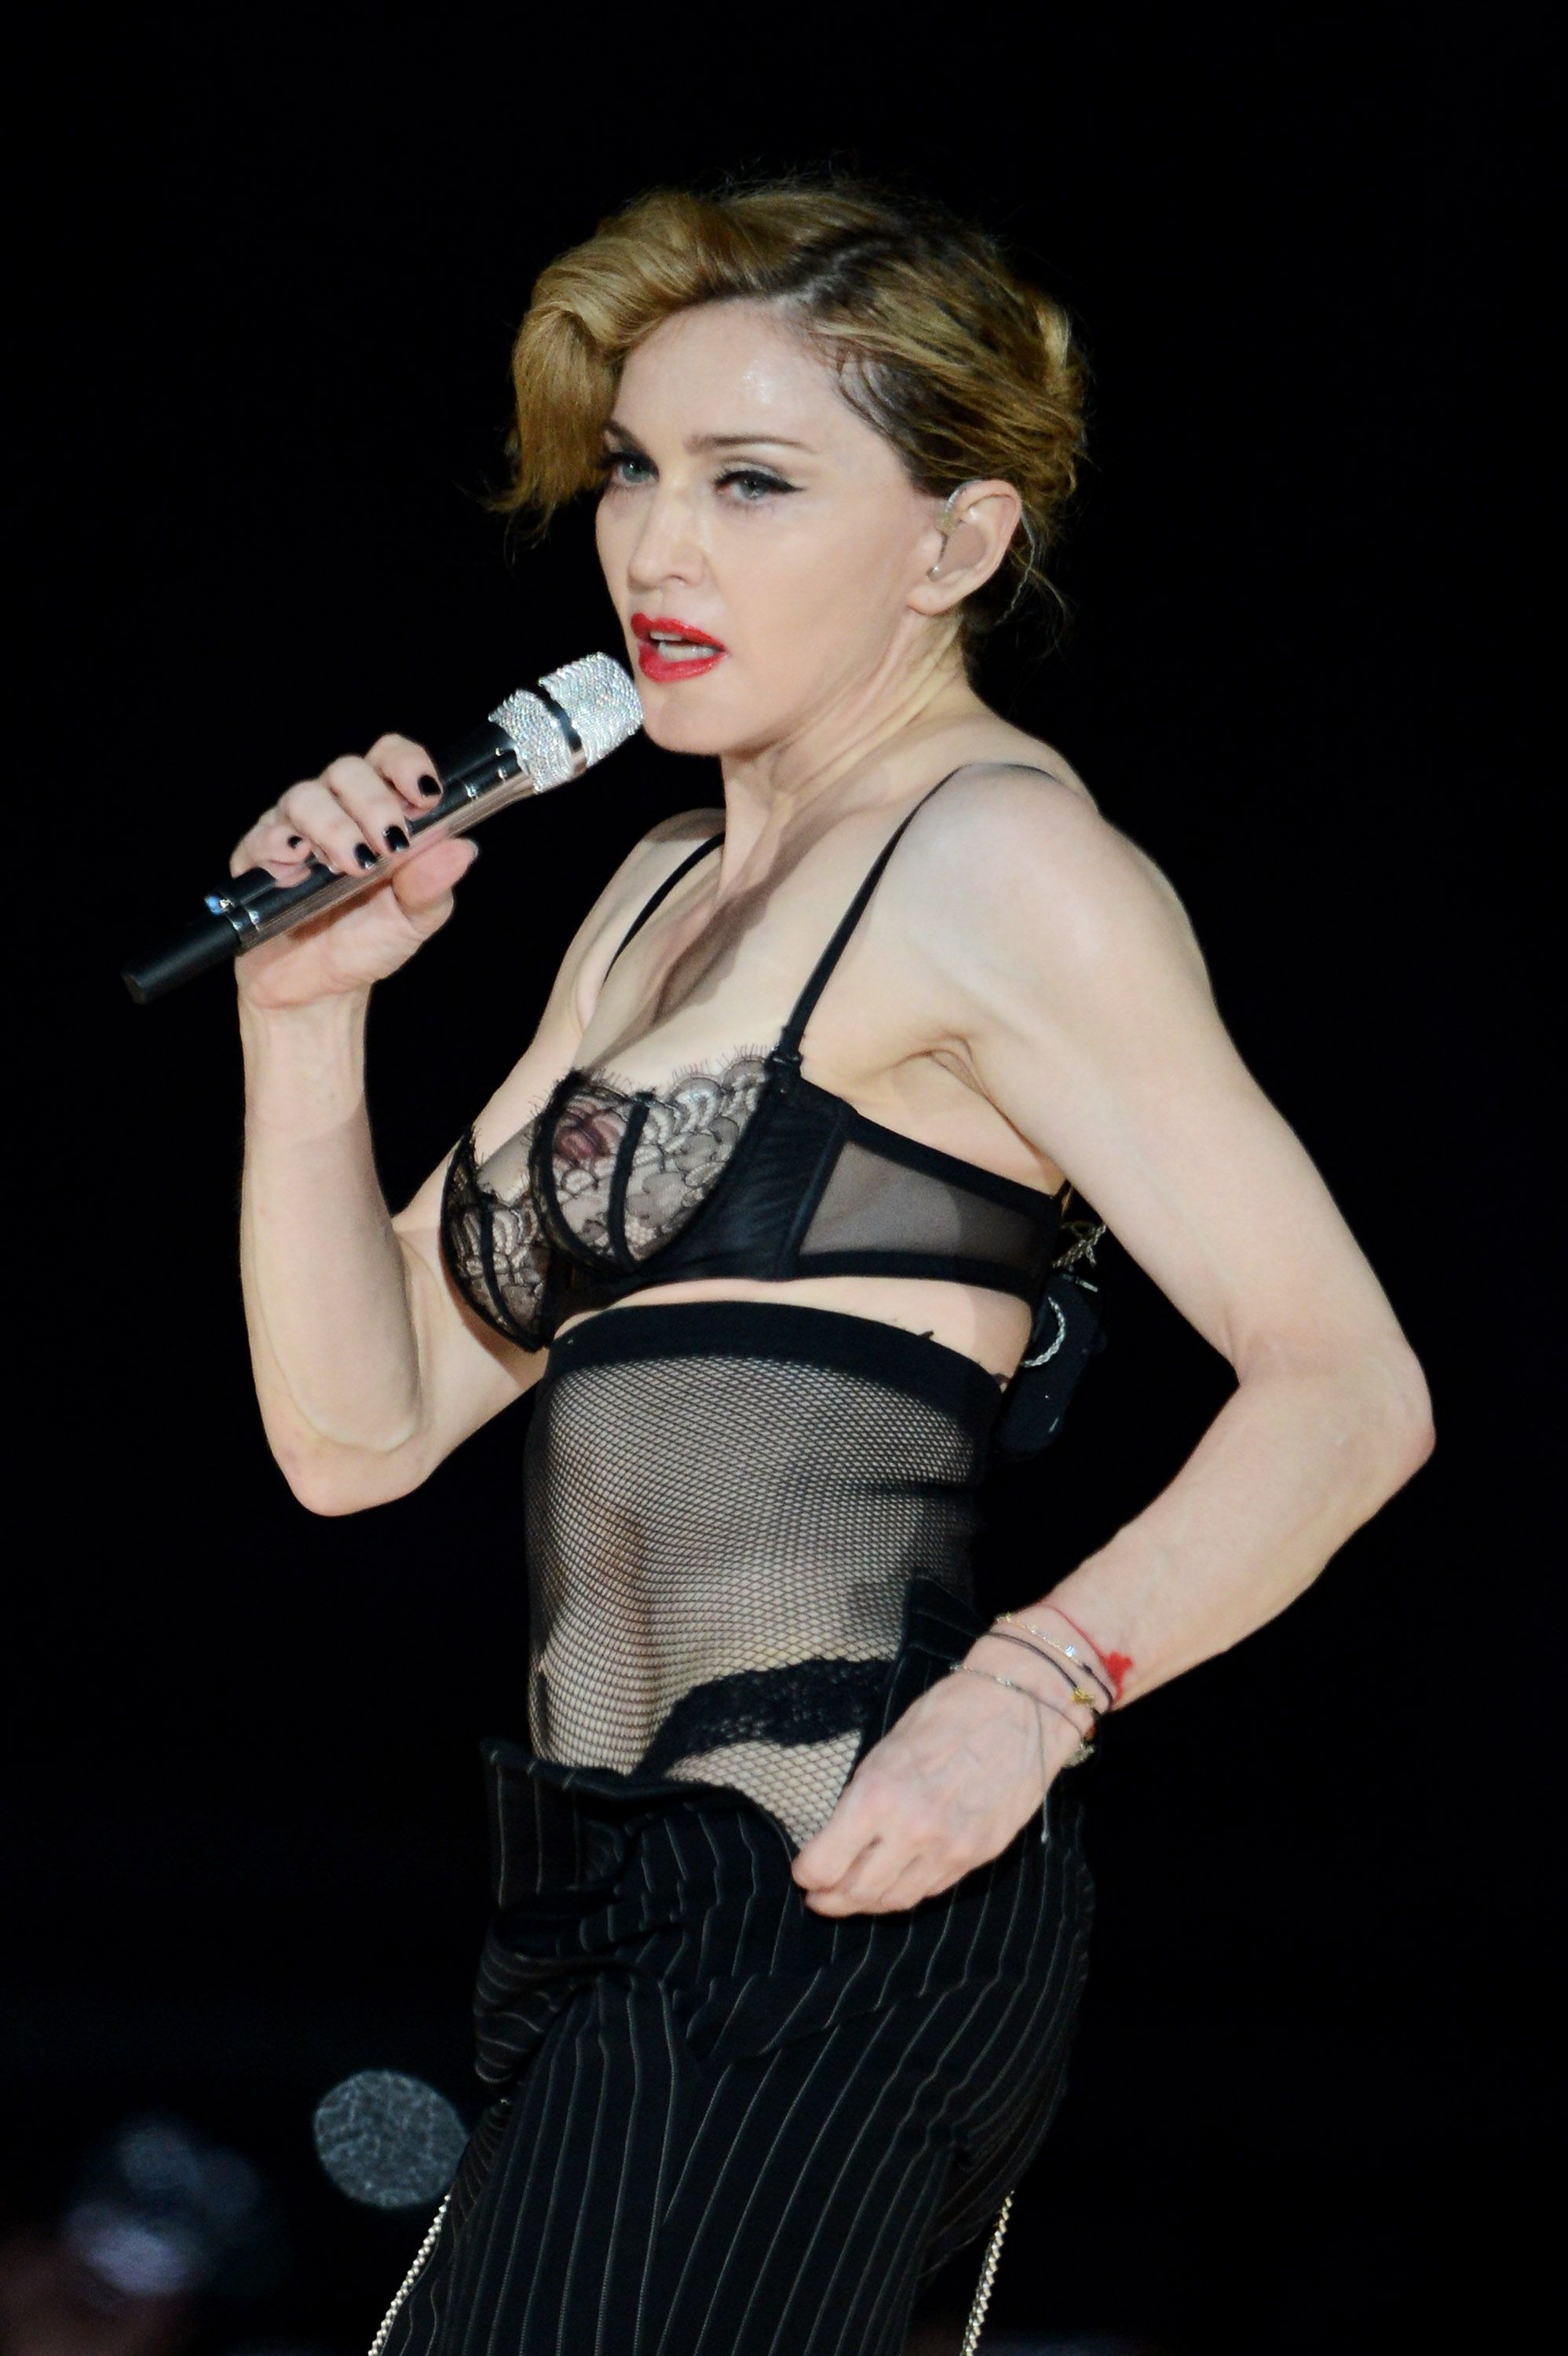 2012 - Madonna at the MDNA Tour